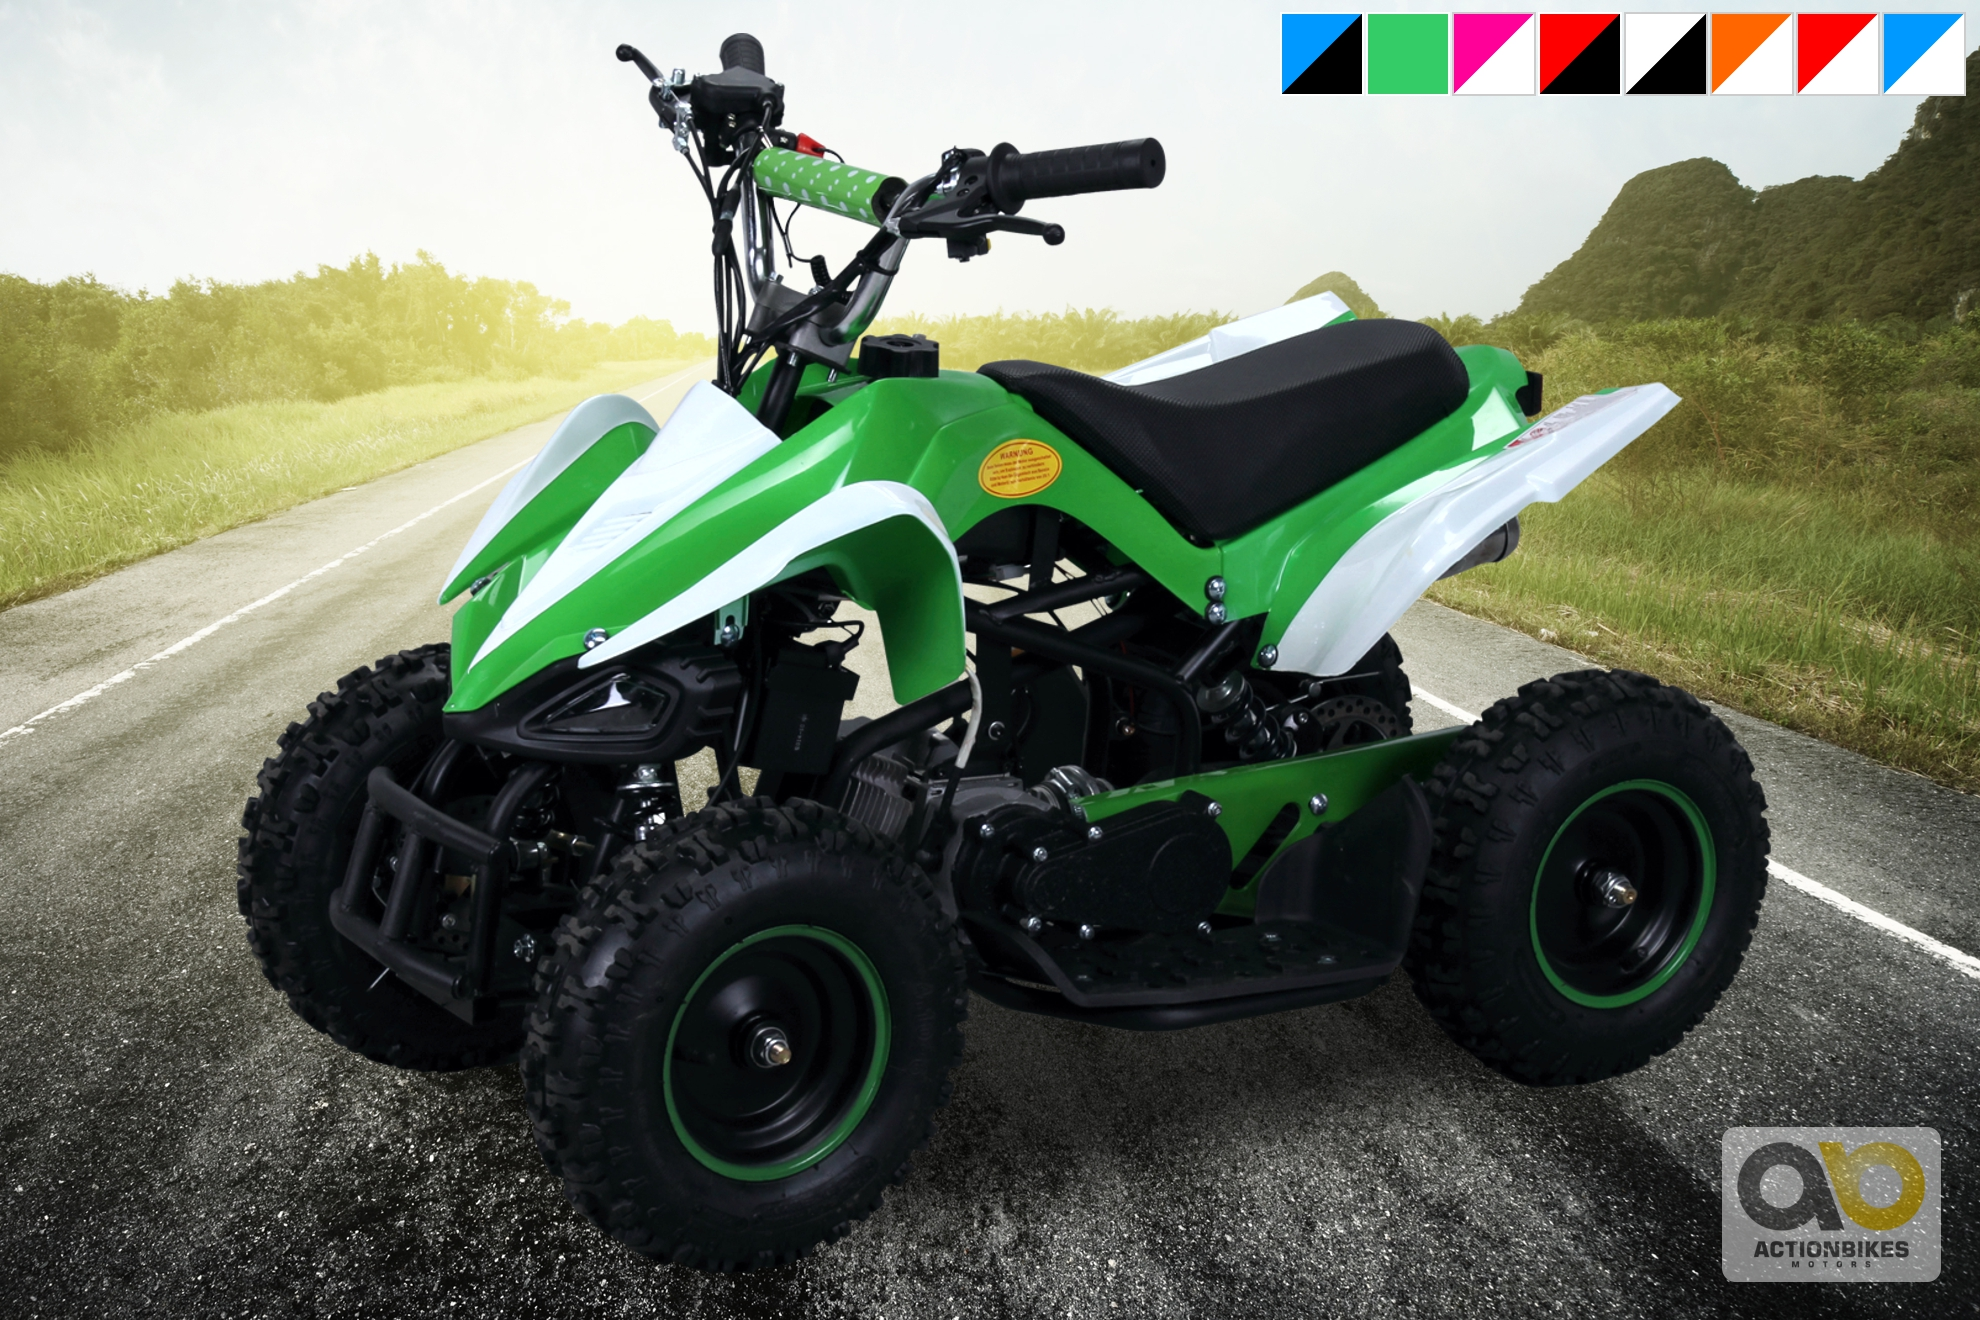 miniquad kinder atv racer 49cc pocketquad 2 takt quad. Black Bedroom Furniture Sets. Home Design Ideas